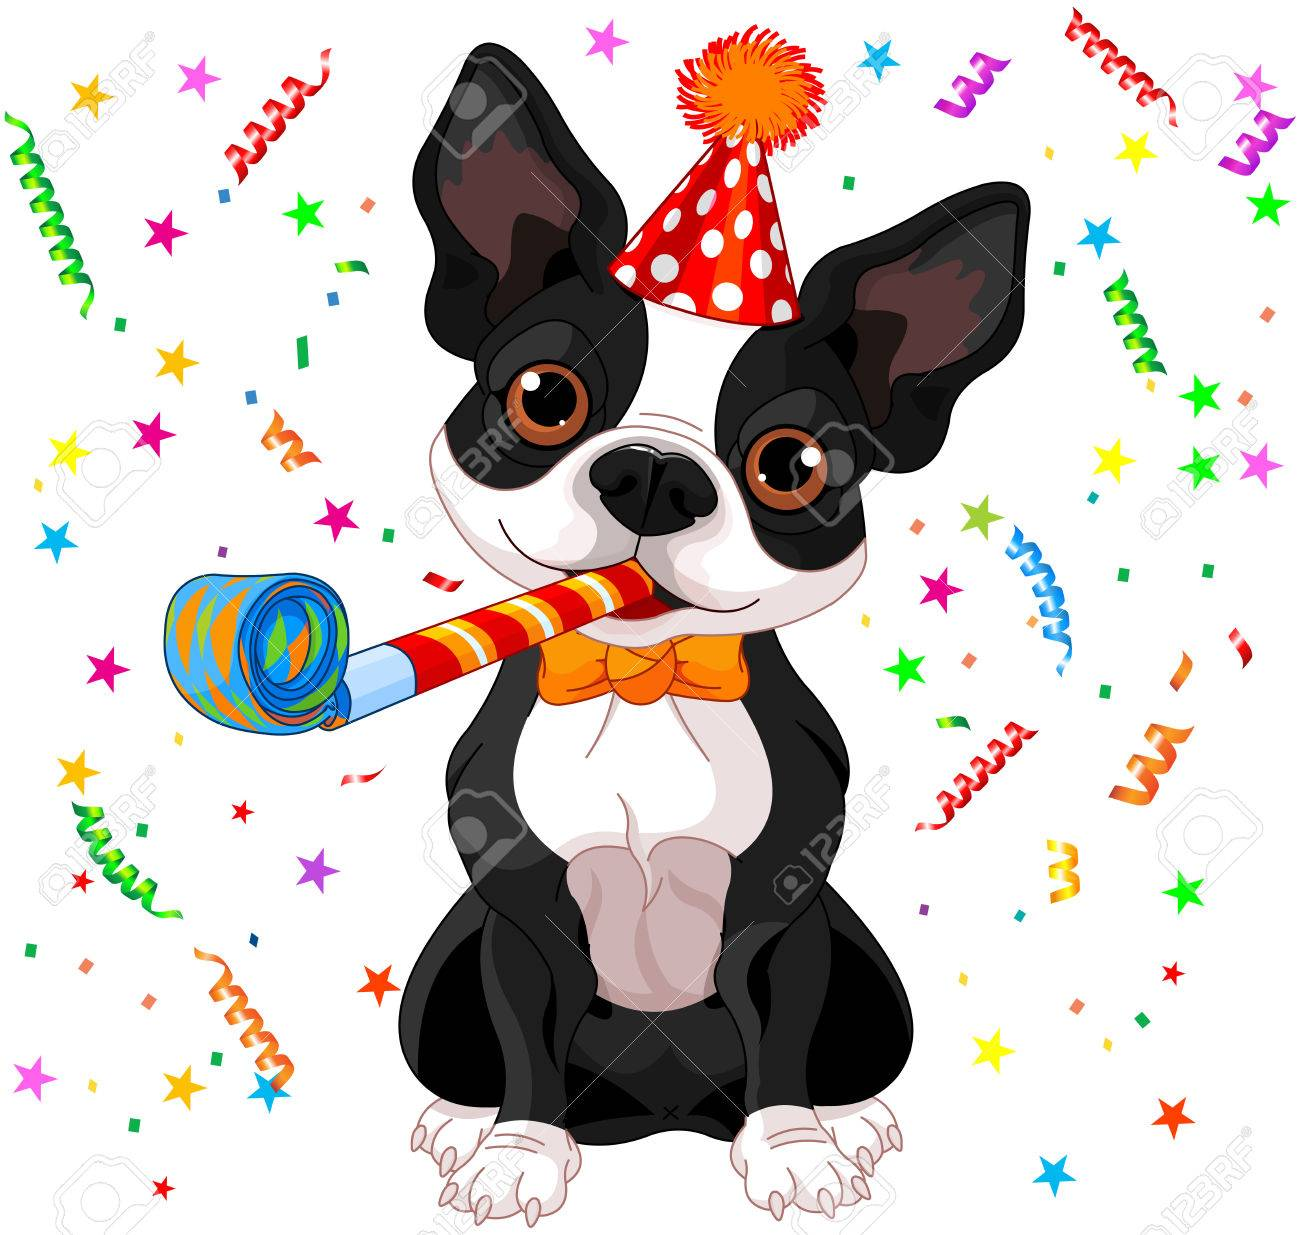 Adopter un chien de refuge - Page 2 35588778-illustration-of-cute-boston-terrier-celebrating